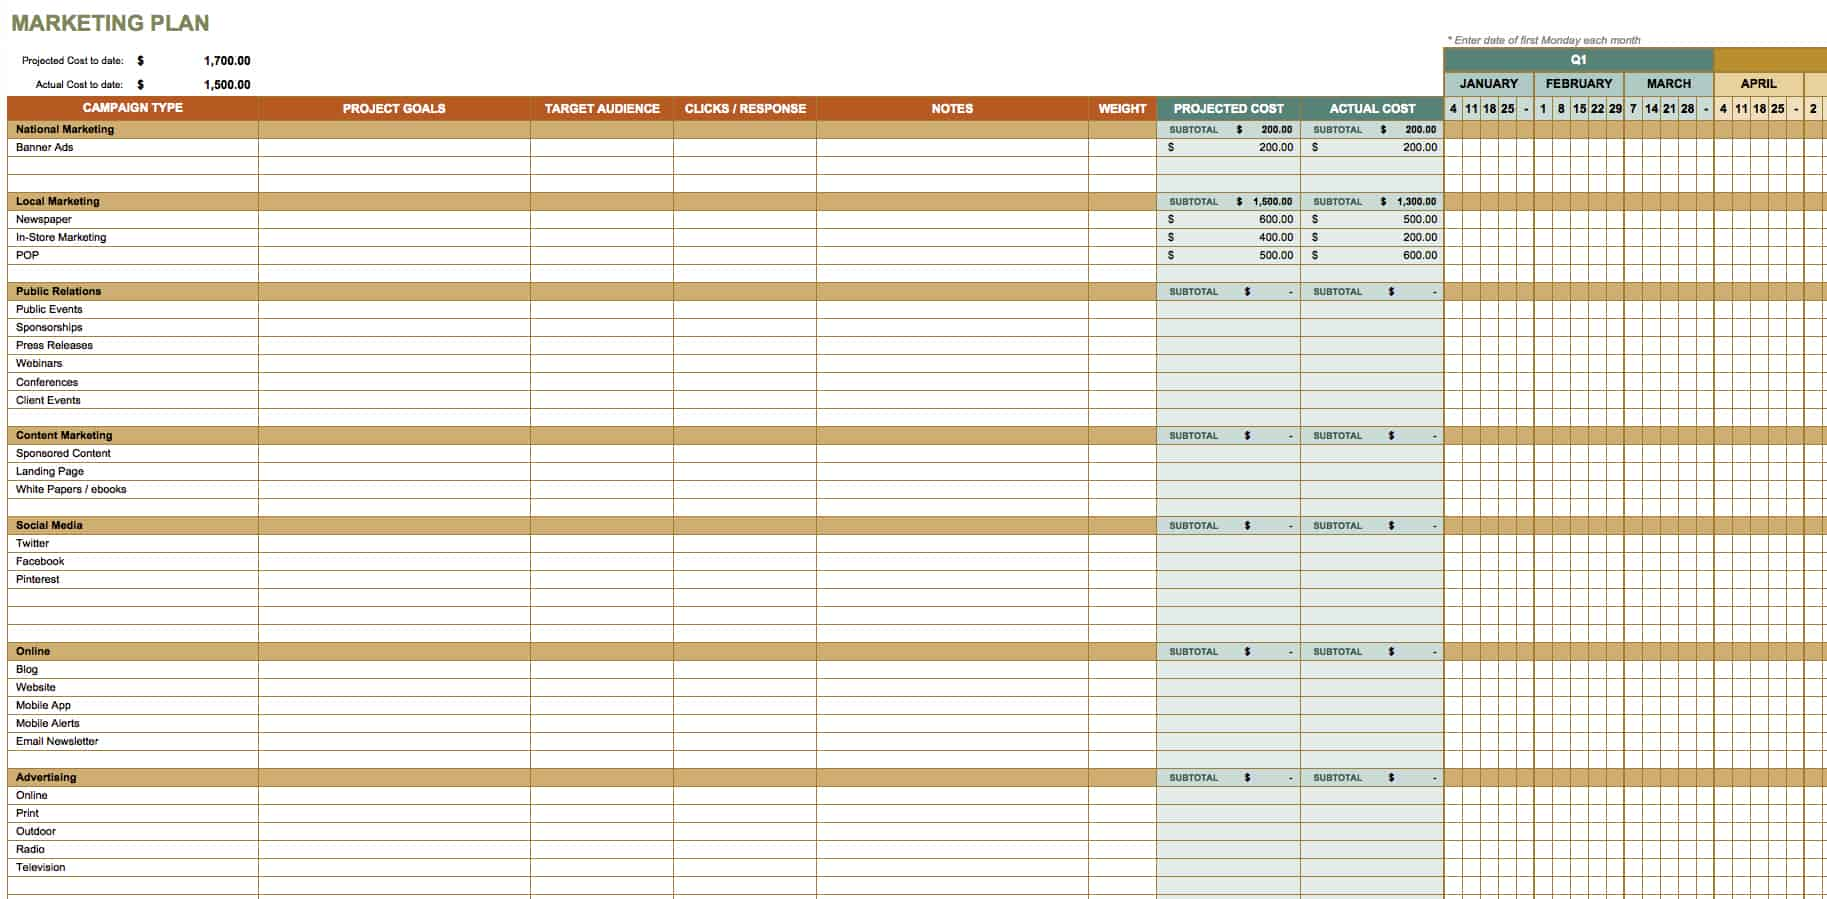 sales and marketing action plan template - free marketing plan templates for excel smartsheet